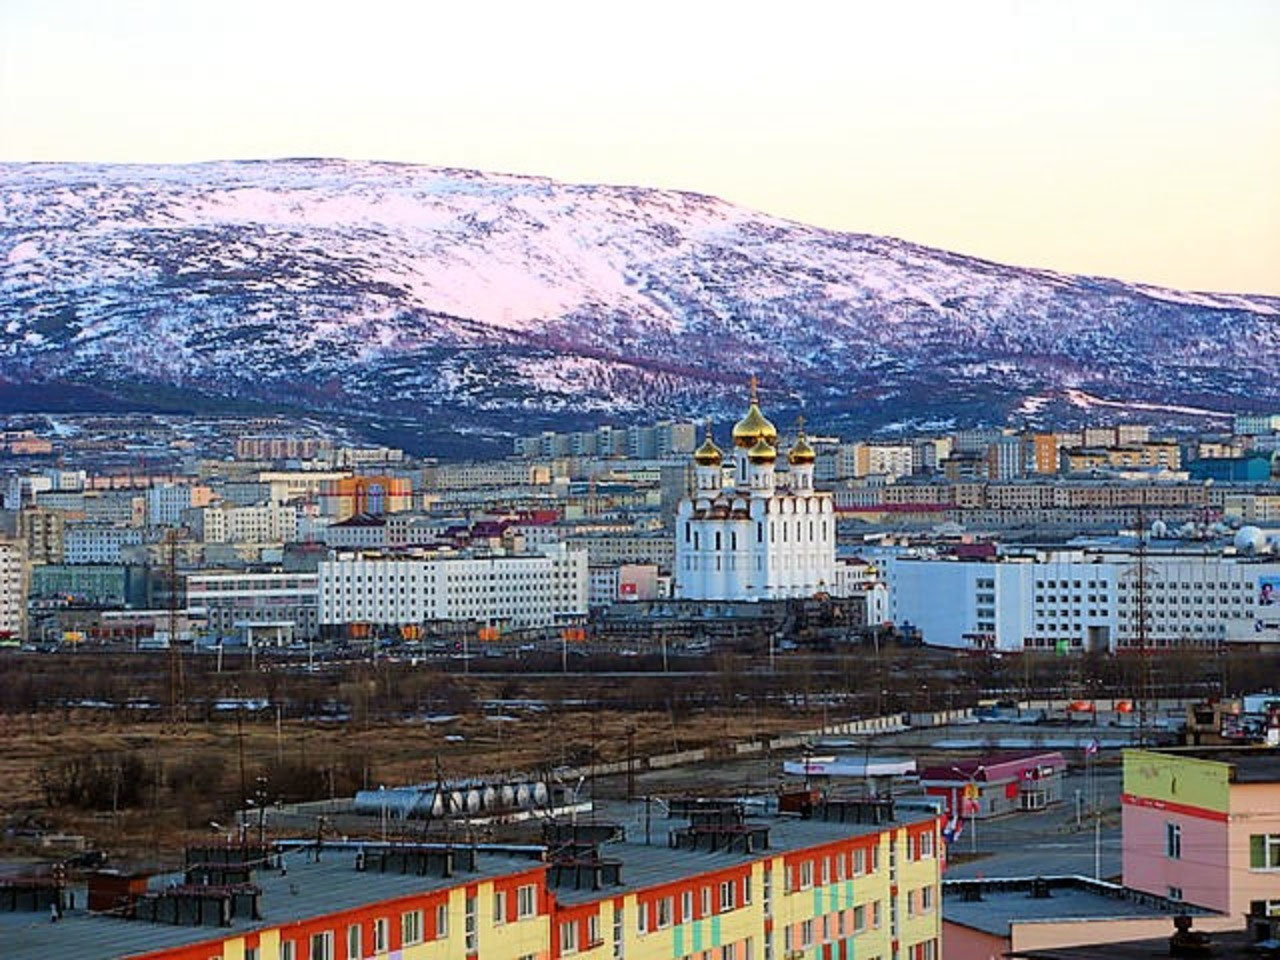 Recycling plant going to build in Magadan